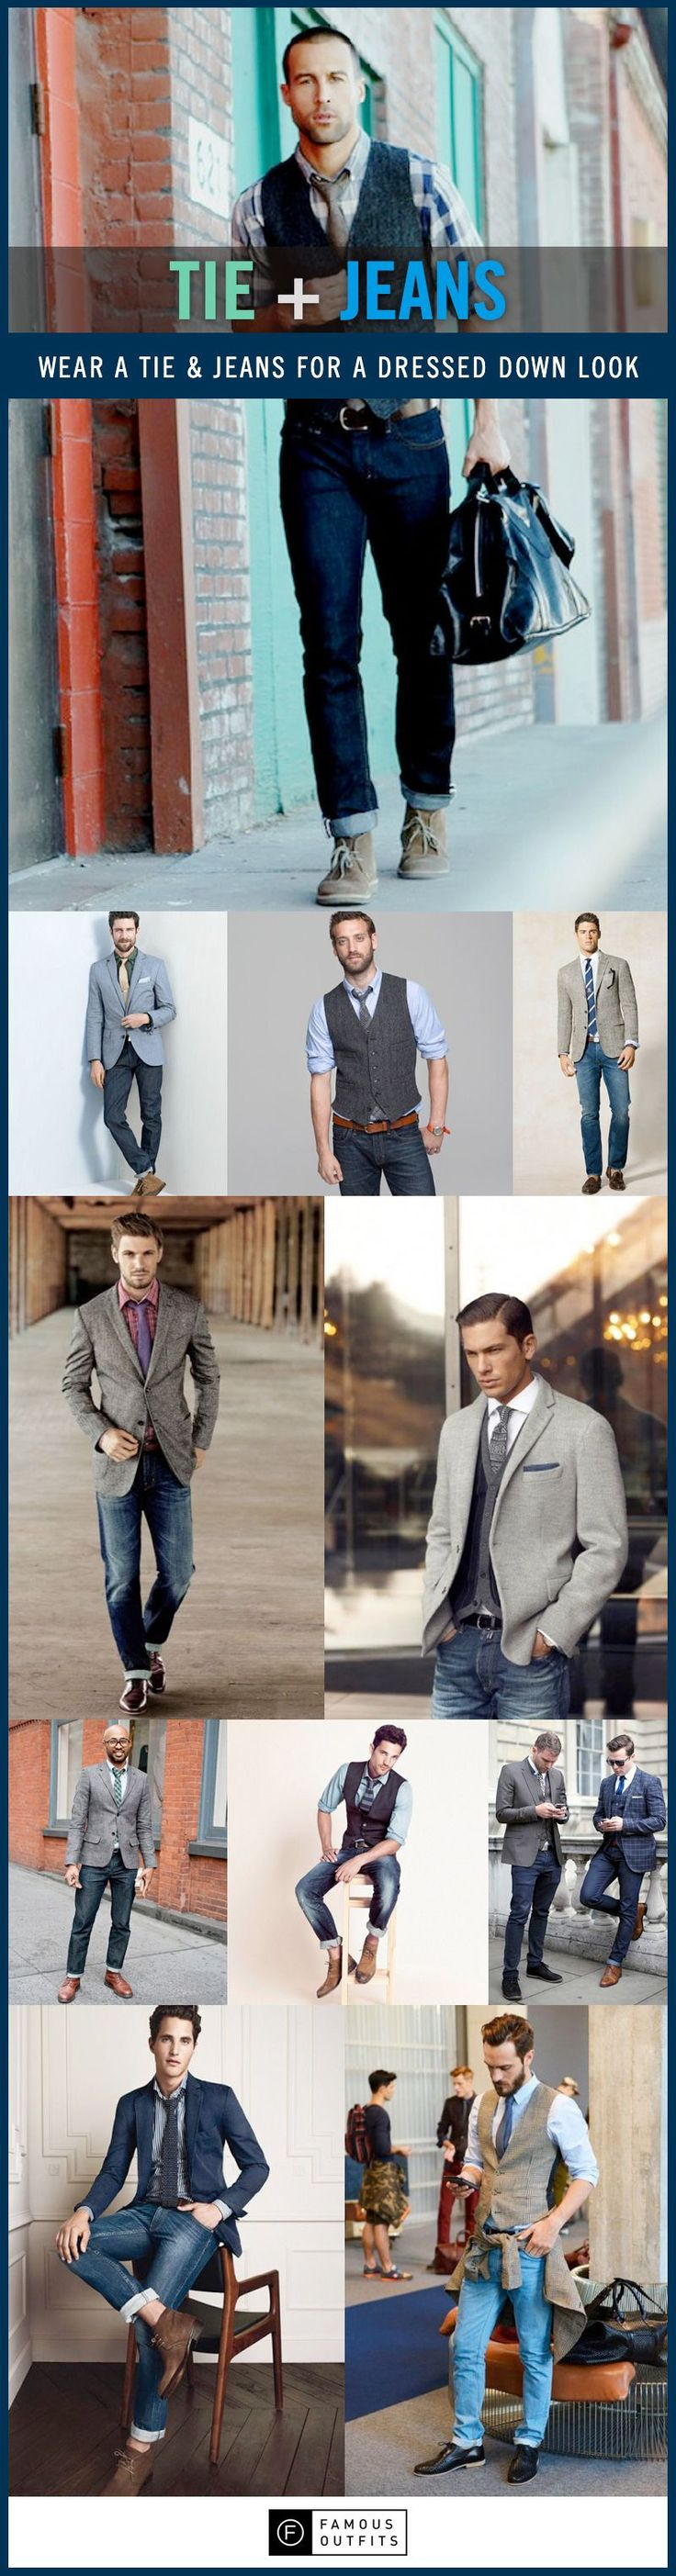 Fashion rules are made to be broken, and the proof lies in the endurance of the tie-and-jeans combo. While some purists rally against this pairing of formal and casual, fashionable fellows have proven that it can indeed work well -- the trick lies in sticking with timeless jeans styles, flattering fits and a well-matched tie.